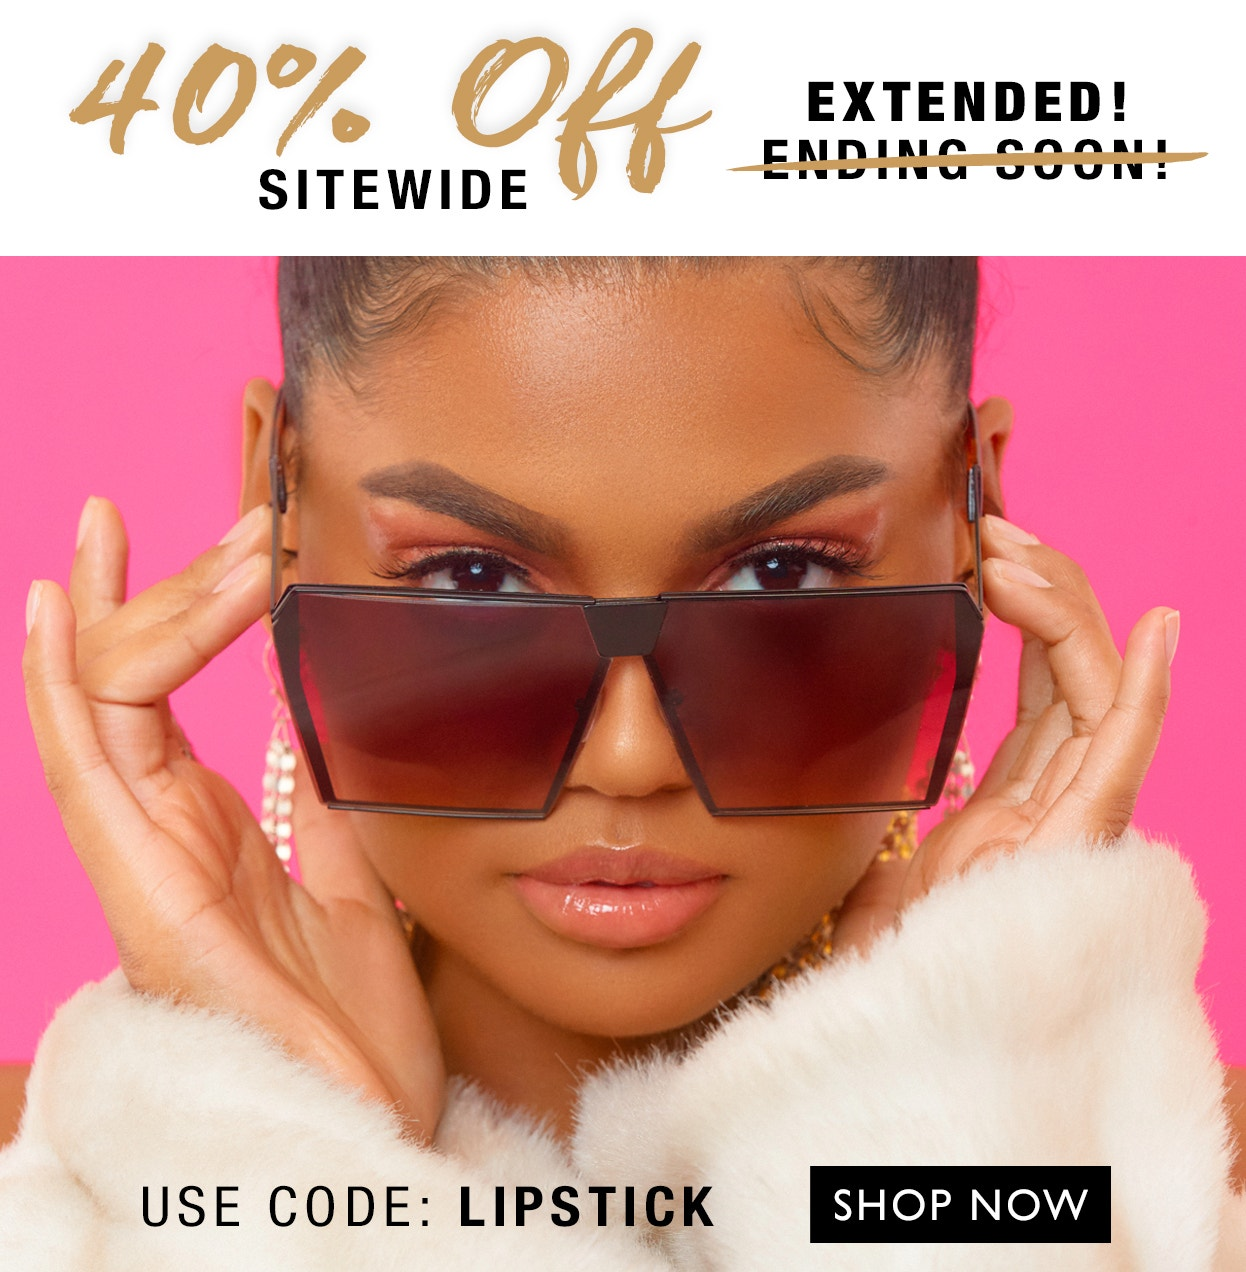 Black Radiance   Extended! 40% Off Sitewide with code: LIPSTICK - shop your favorite contour palette, lipsticks, and more! model with sunglasses on pink background